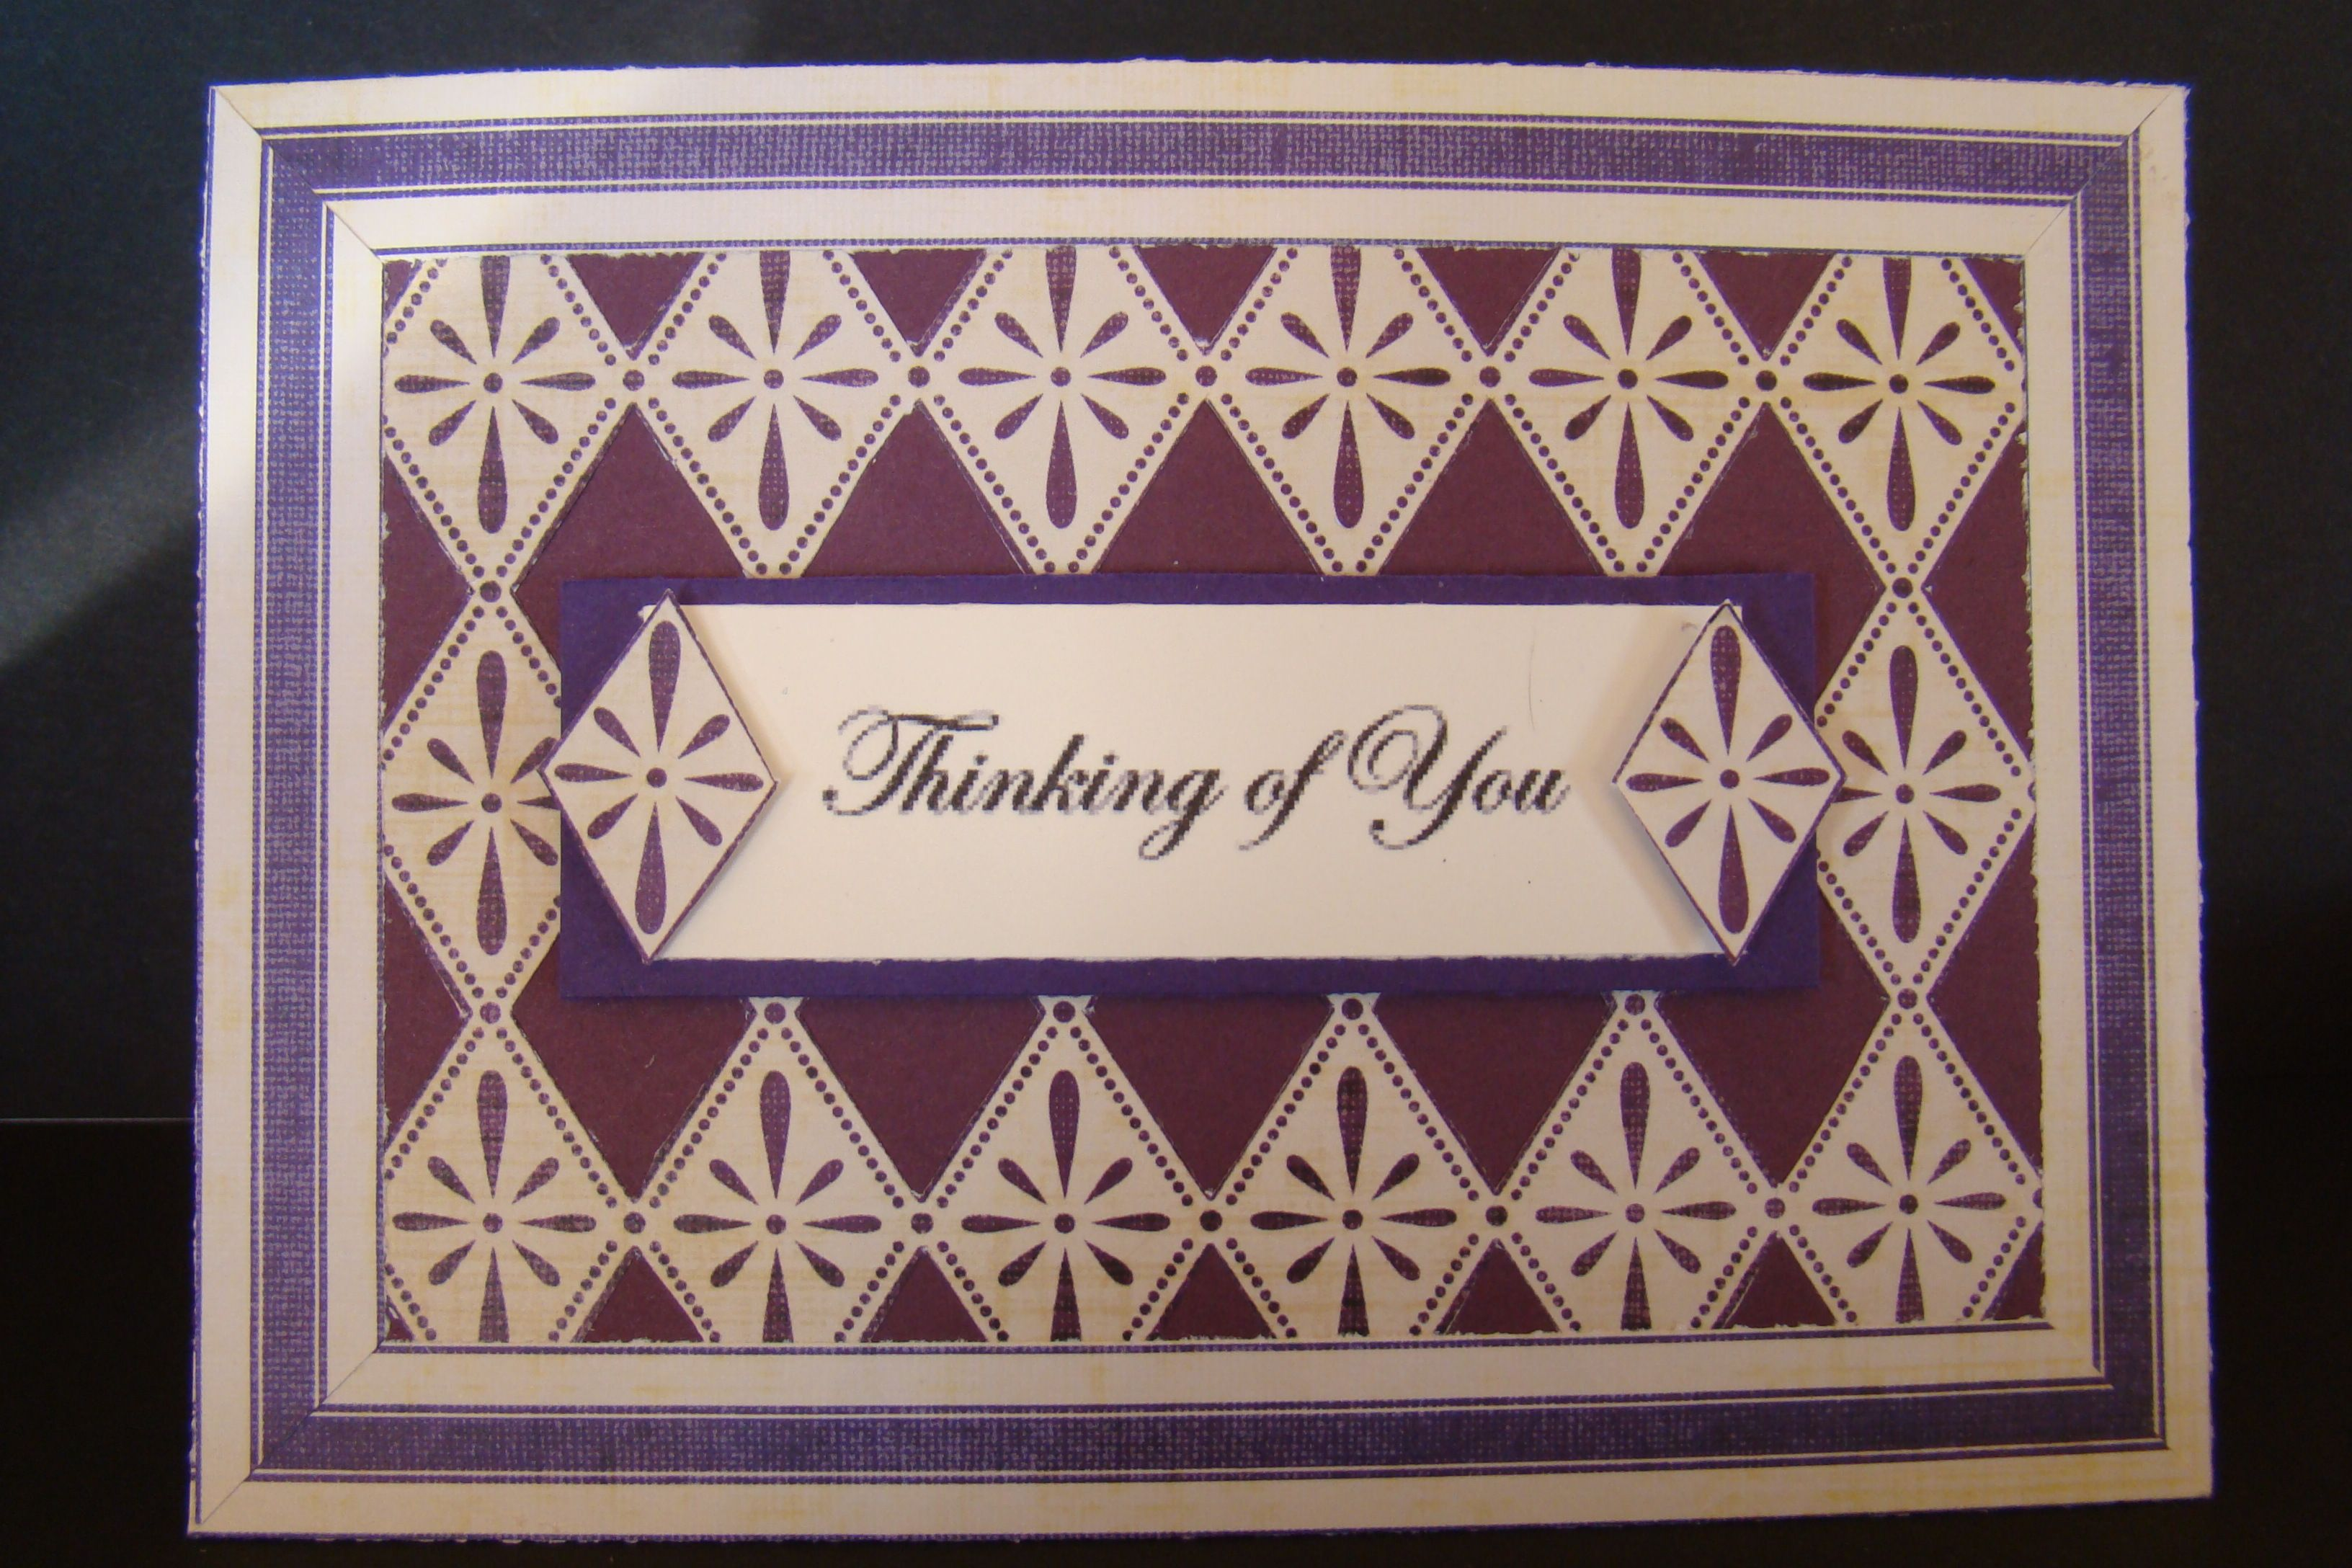 Hand cut designer paper 3-D in plum